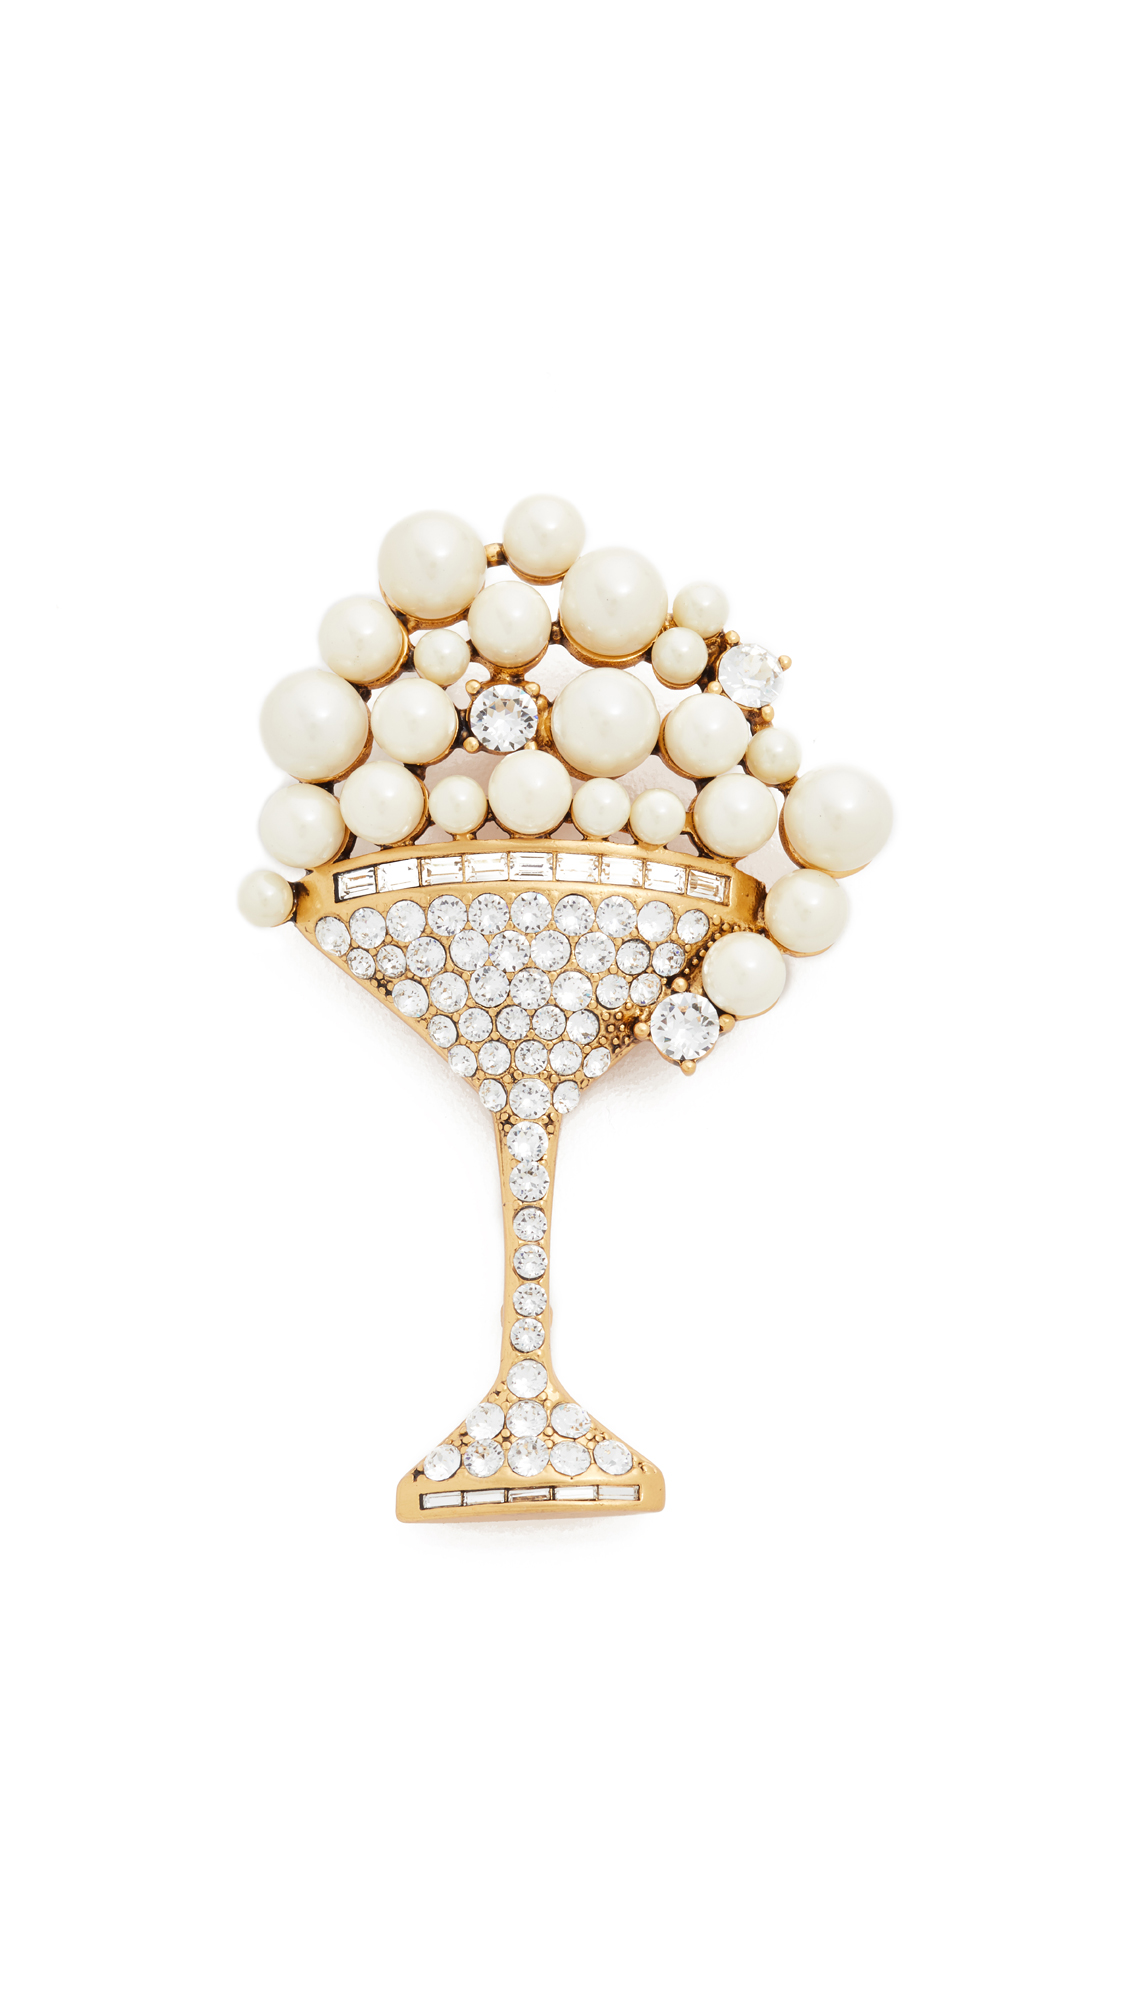 marc jacobs female 227200 marc jacobs martini brooch creamantique gold